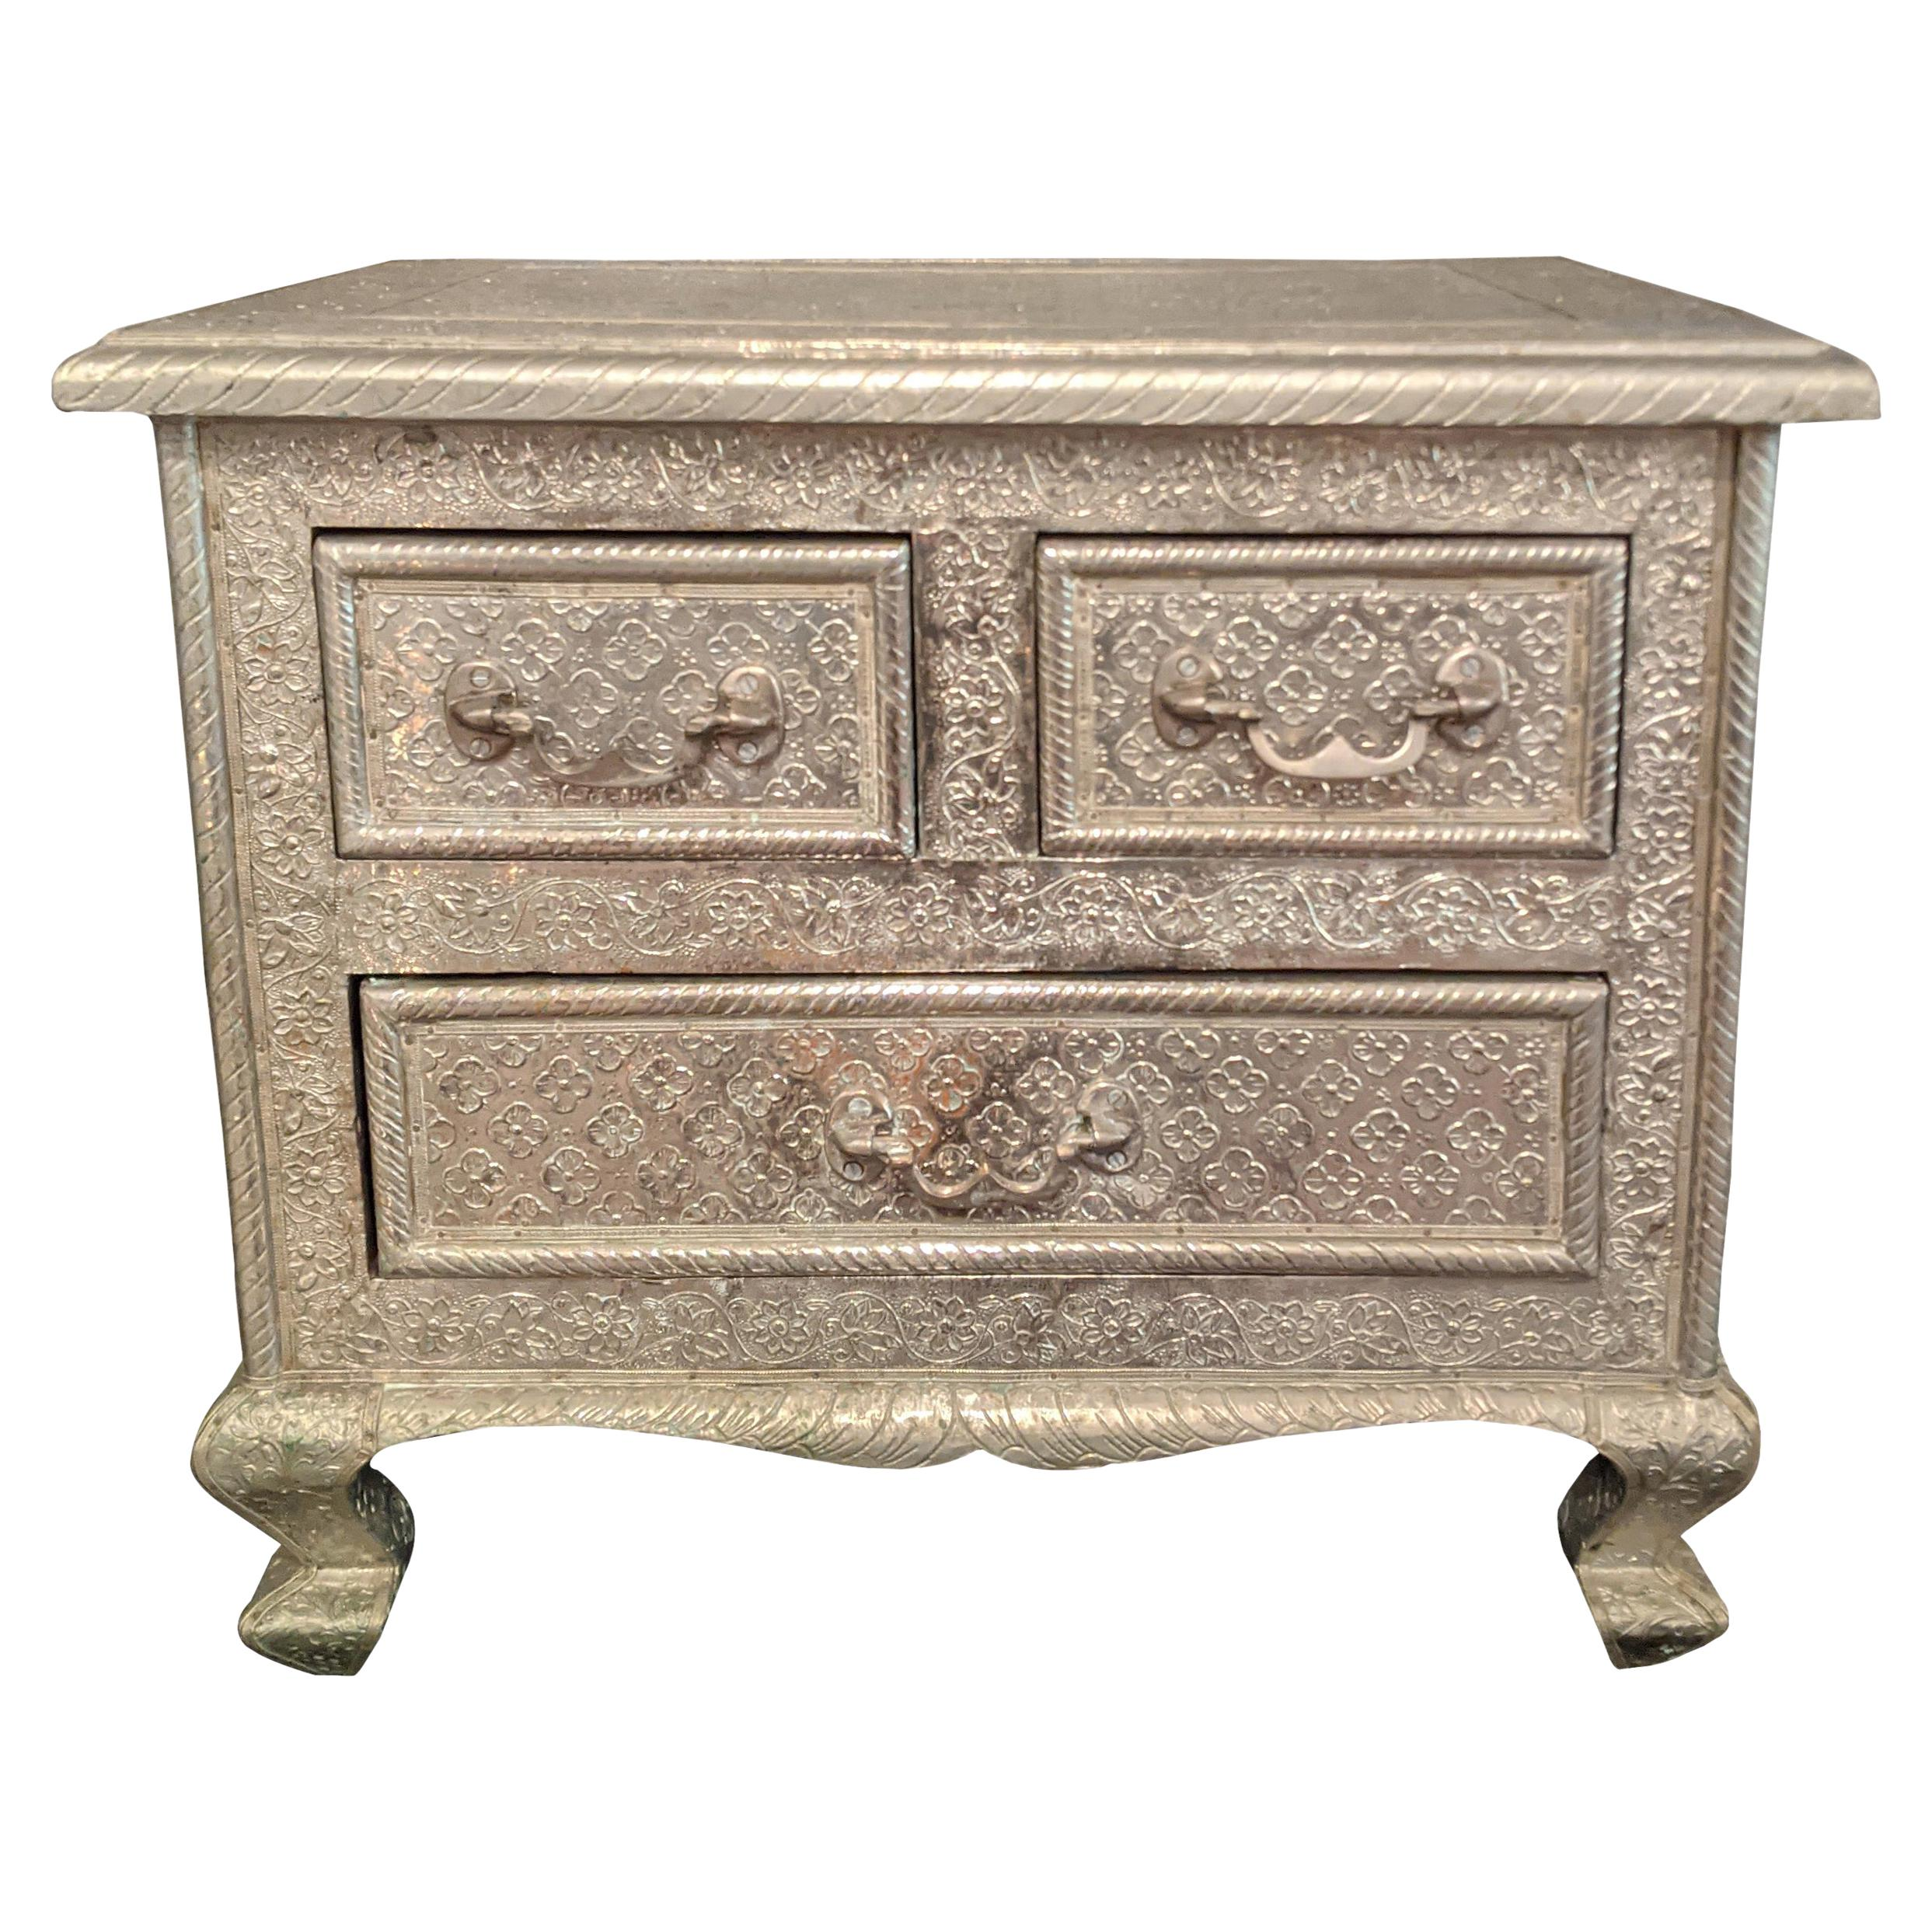 Moroccan Silver Metal Embossed 3 Drawer Chest Nightstand Side Table, French